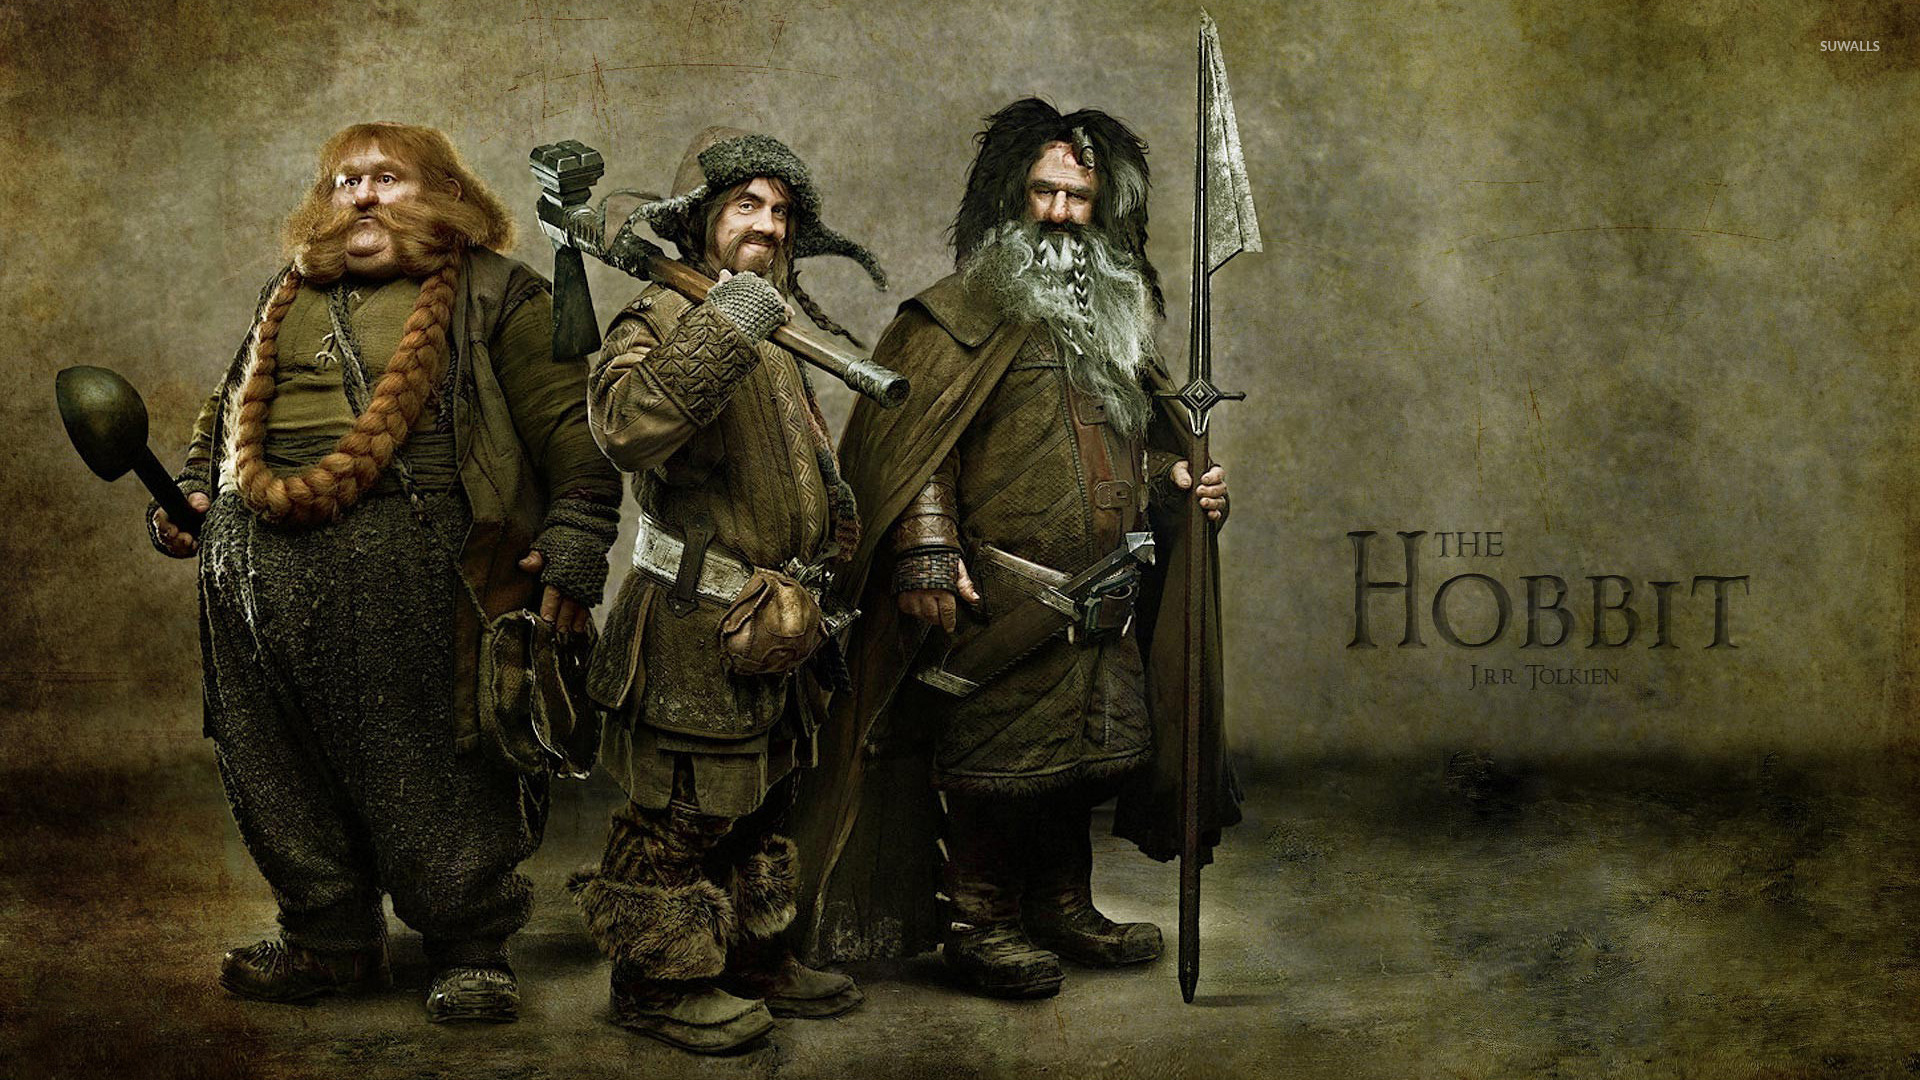 the hobbit movie wallpapers - photo #20